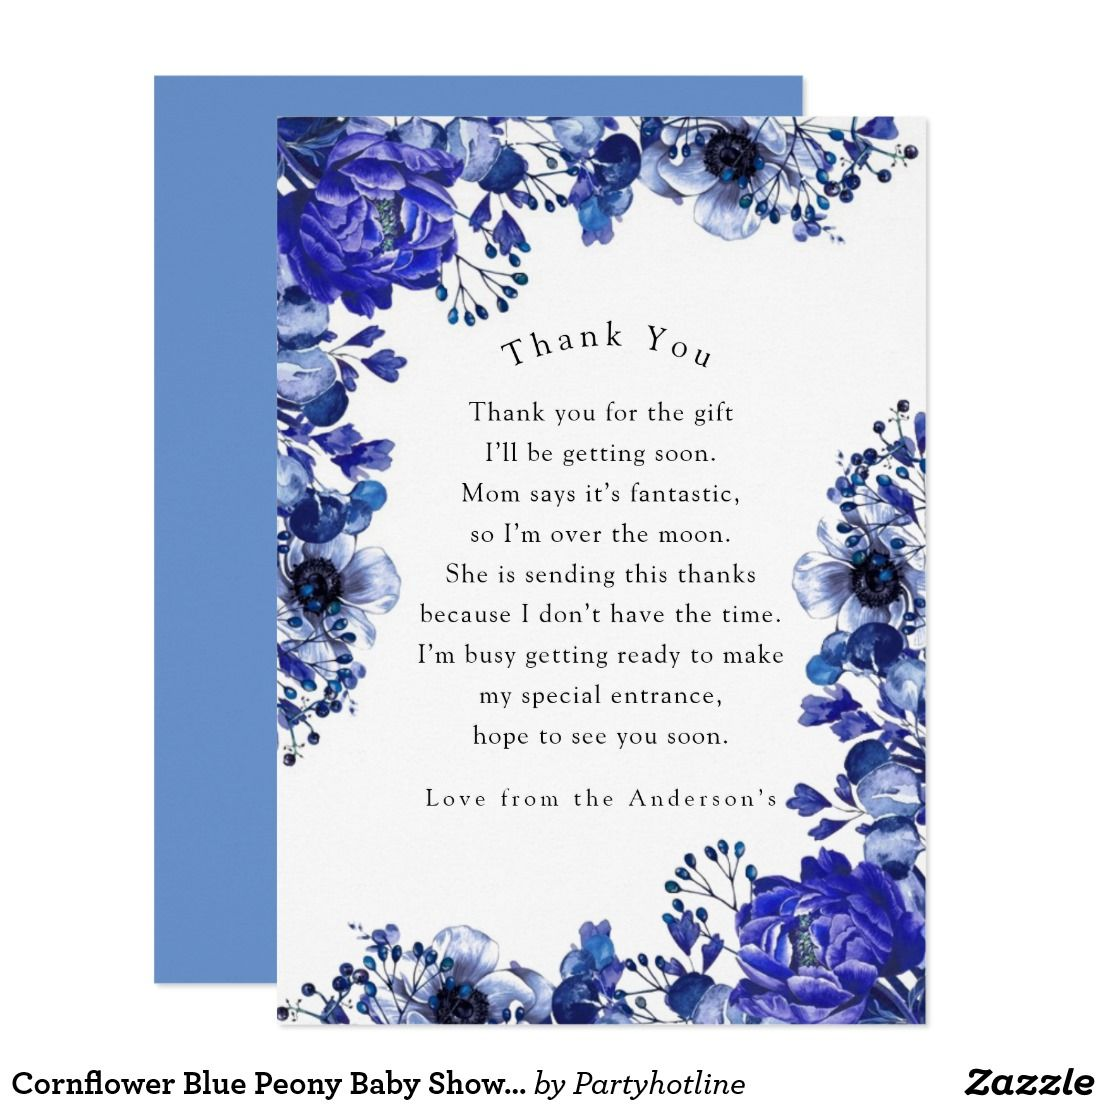 Cornflower Blue Peony Baby Shower Thank You Invitation | Zazzle.com #bluepeonies